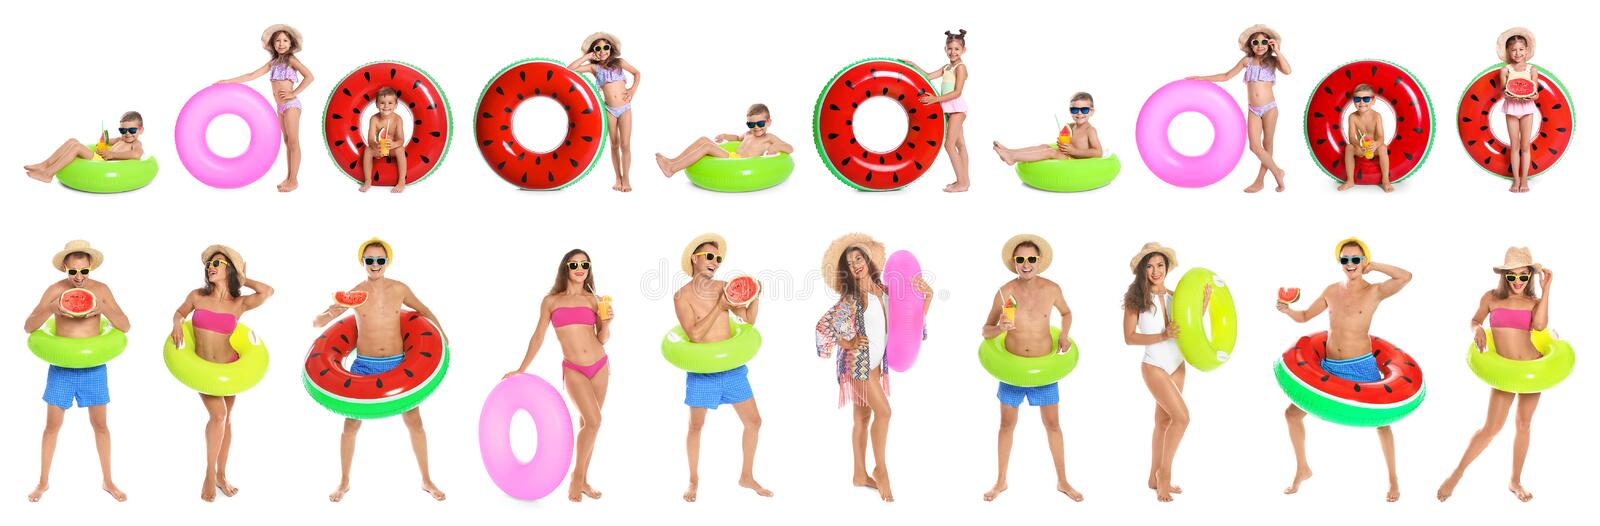 Set of people with inflatable rings stock image